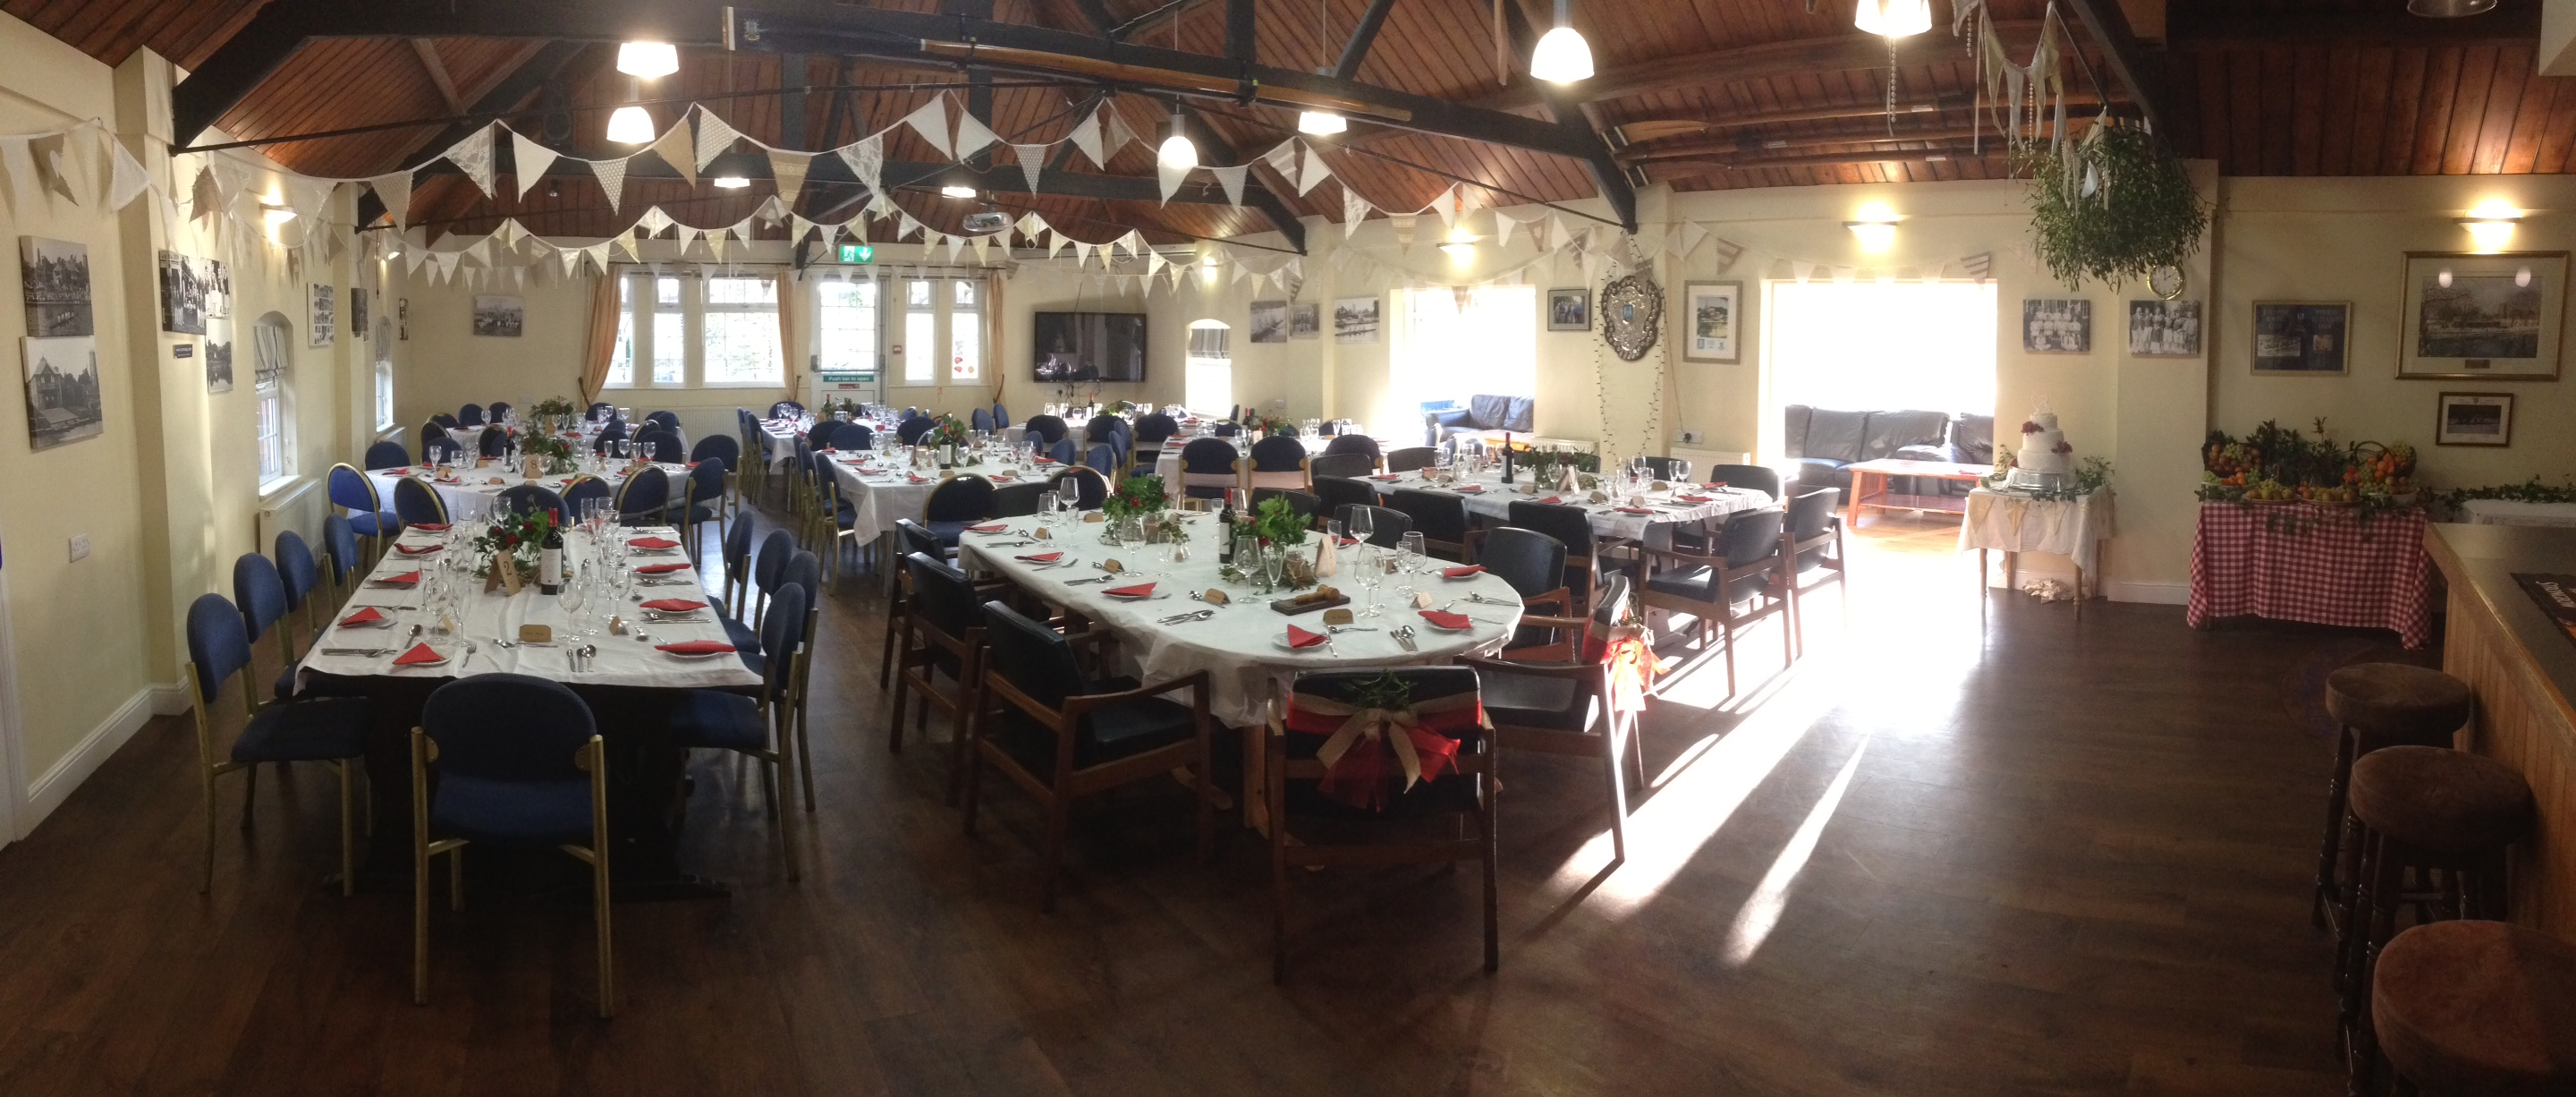 Function-Room-Decorated